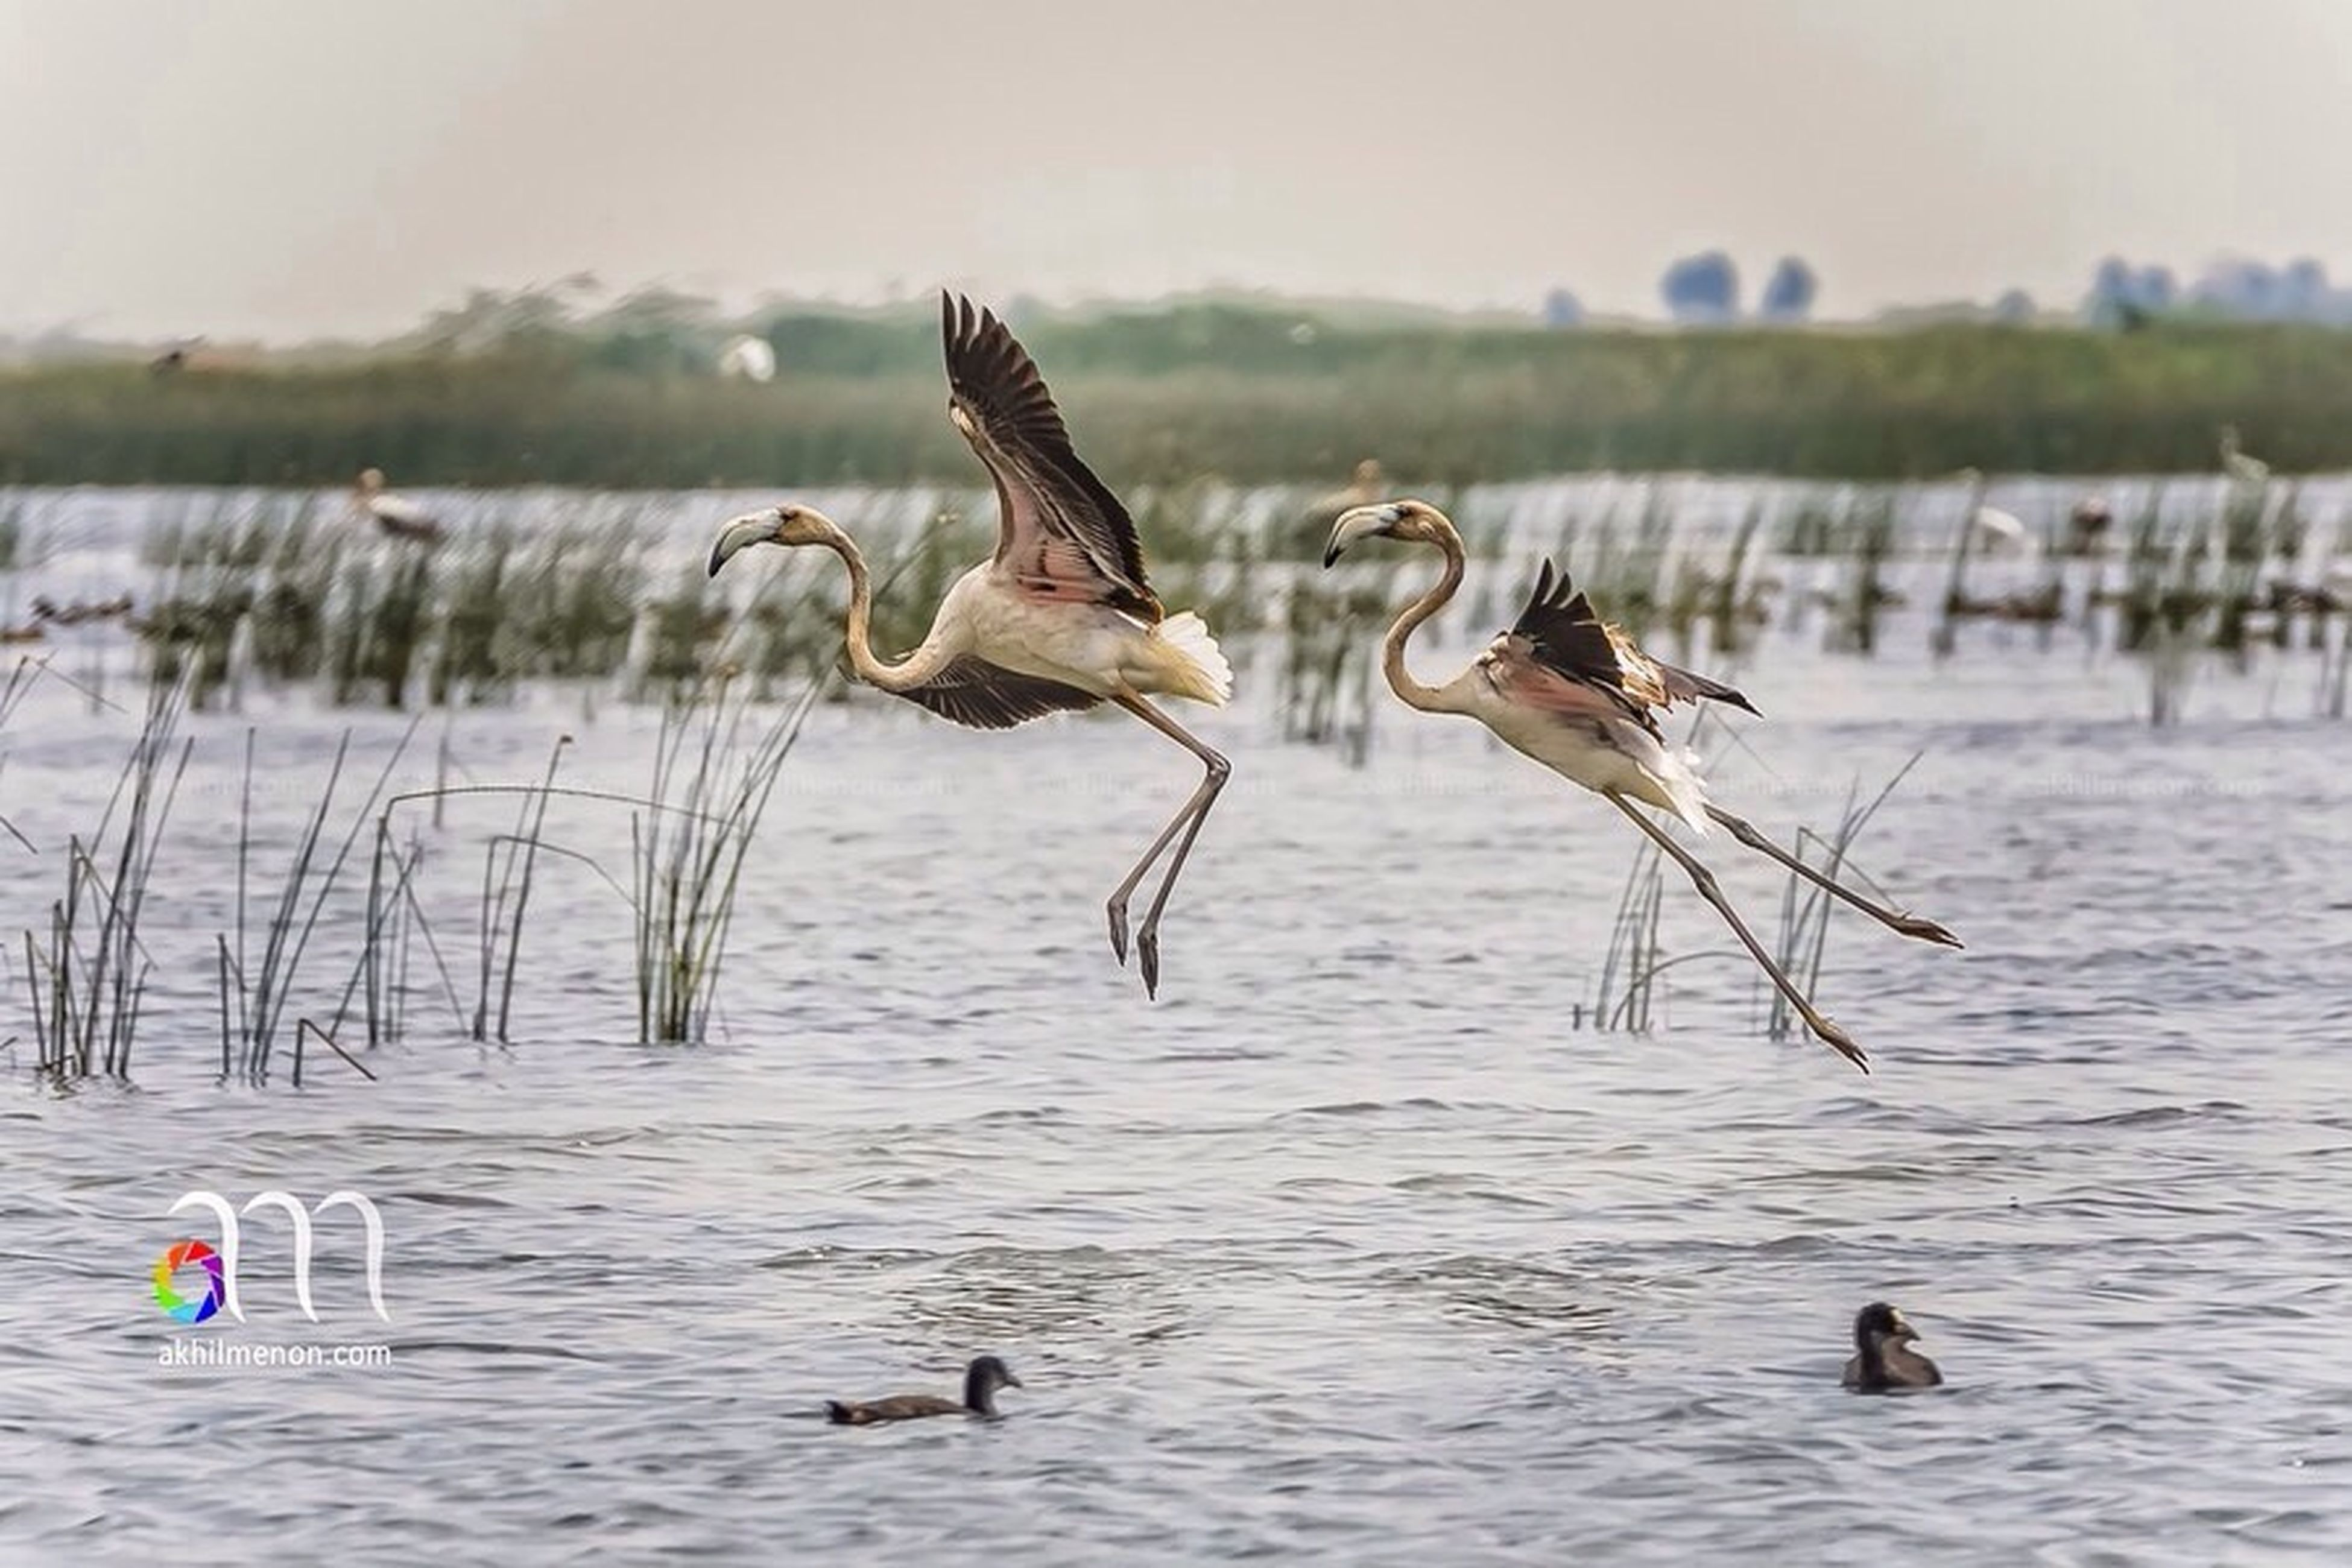 animal themes, animals in the wild, water, bird, wildlife, waterfront, lake, mid-air, flying, spread wings, two animals, river, nature, motion, reflection, full length, rippled, outdoors, day, selective focus